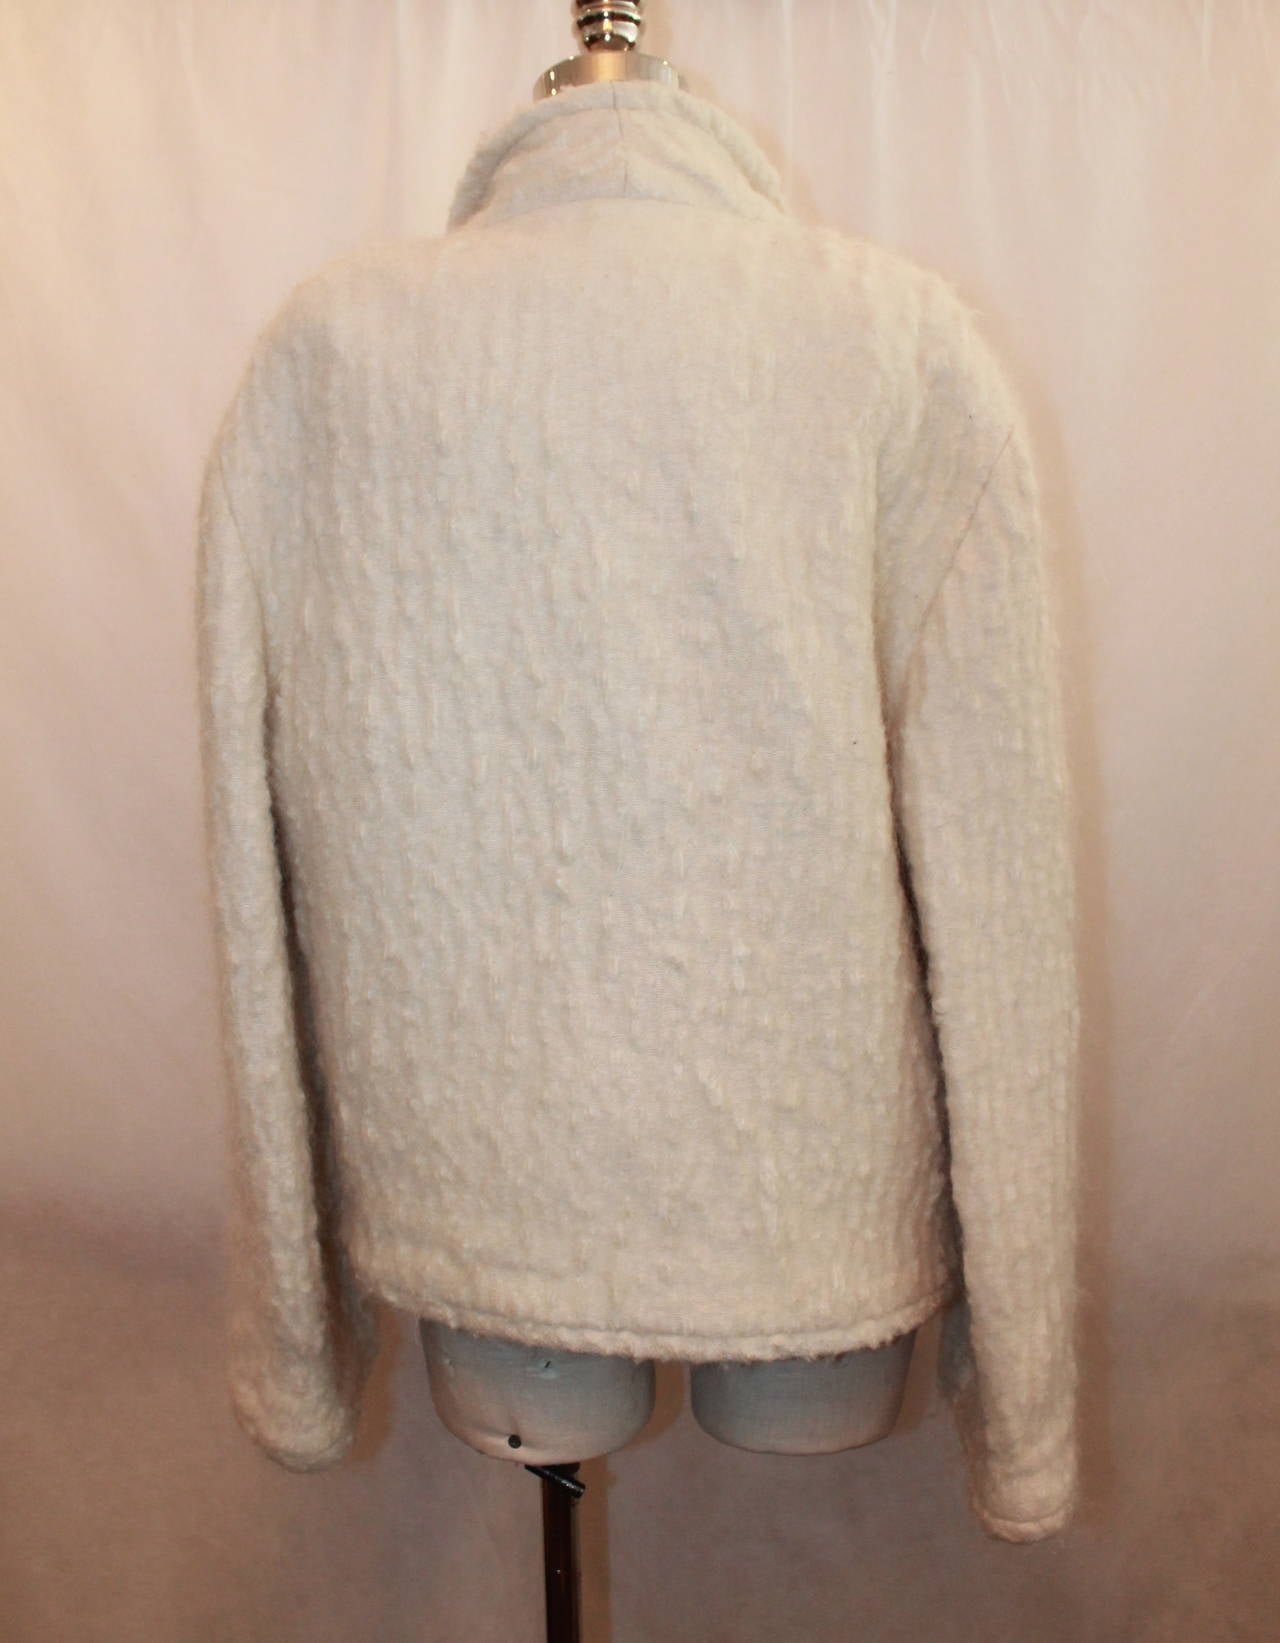 Chanel 1998 Vintage Creme Mohair & Wool Blend Jacket - 38 For Sale 1